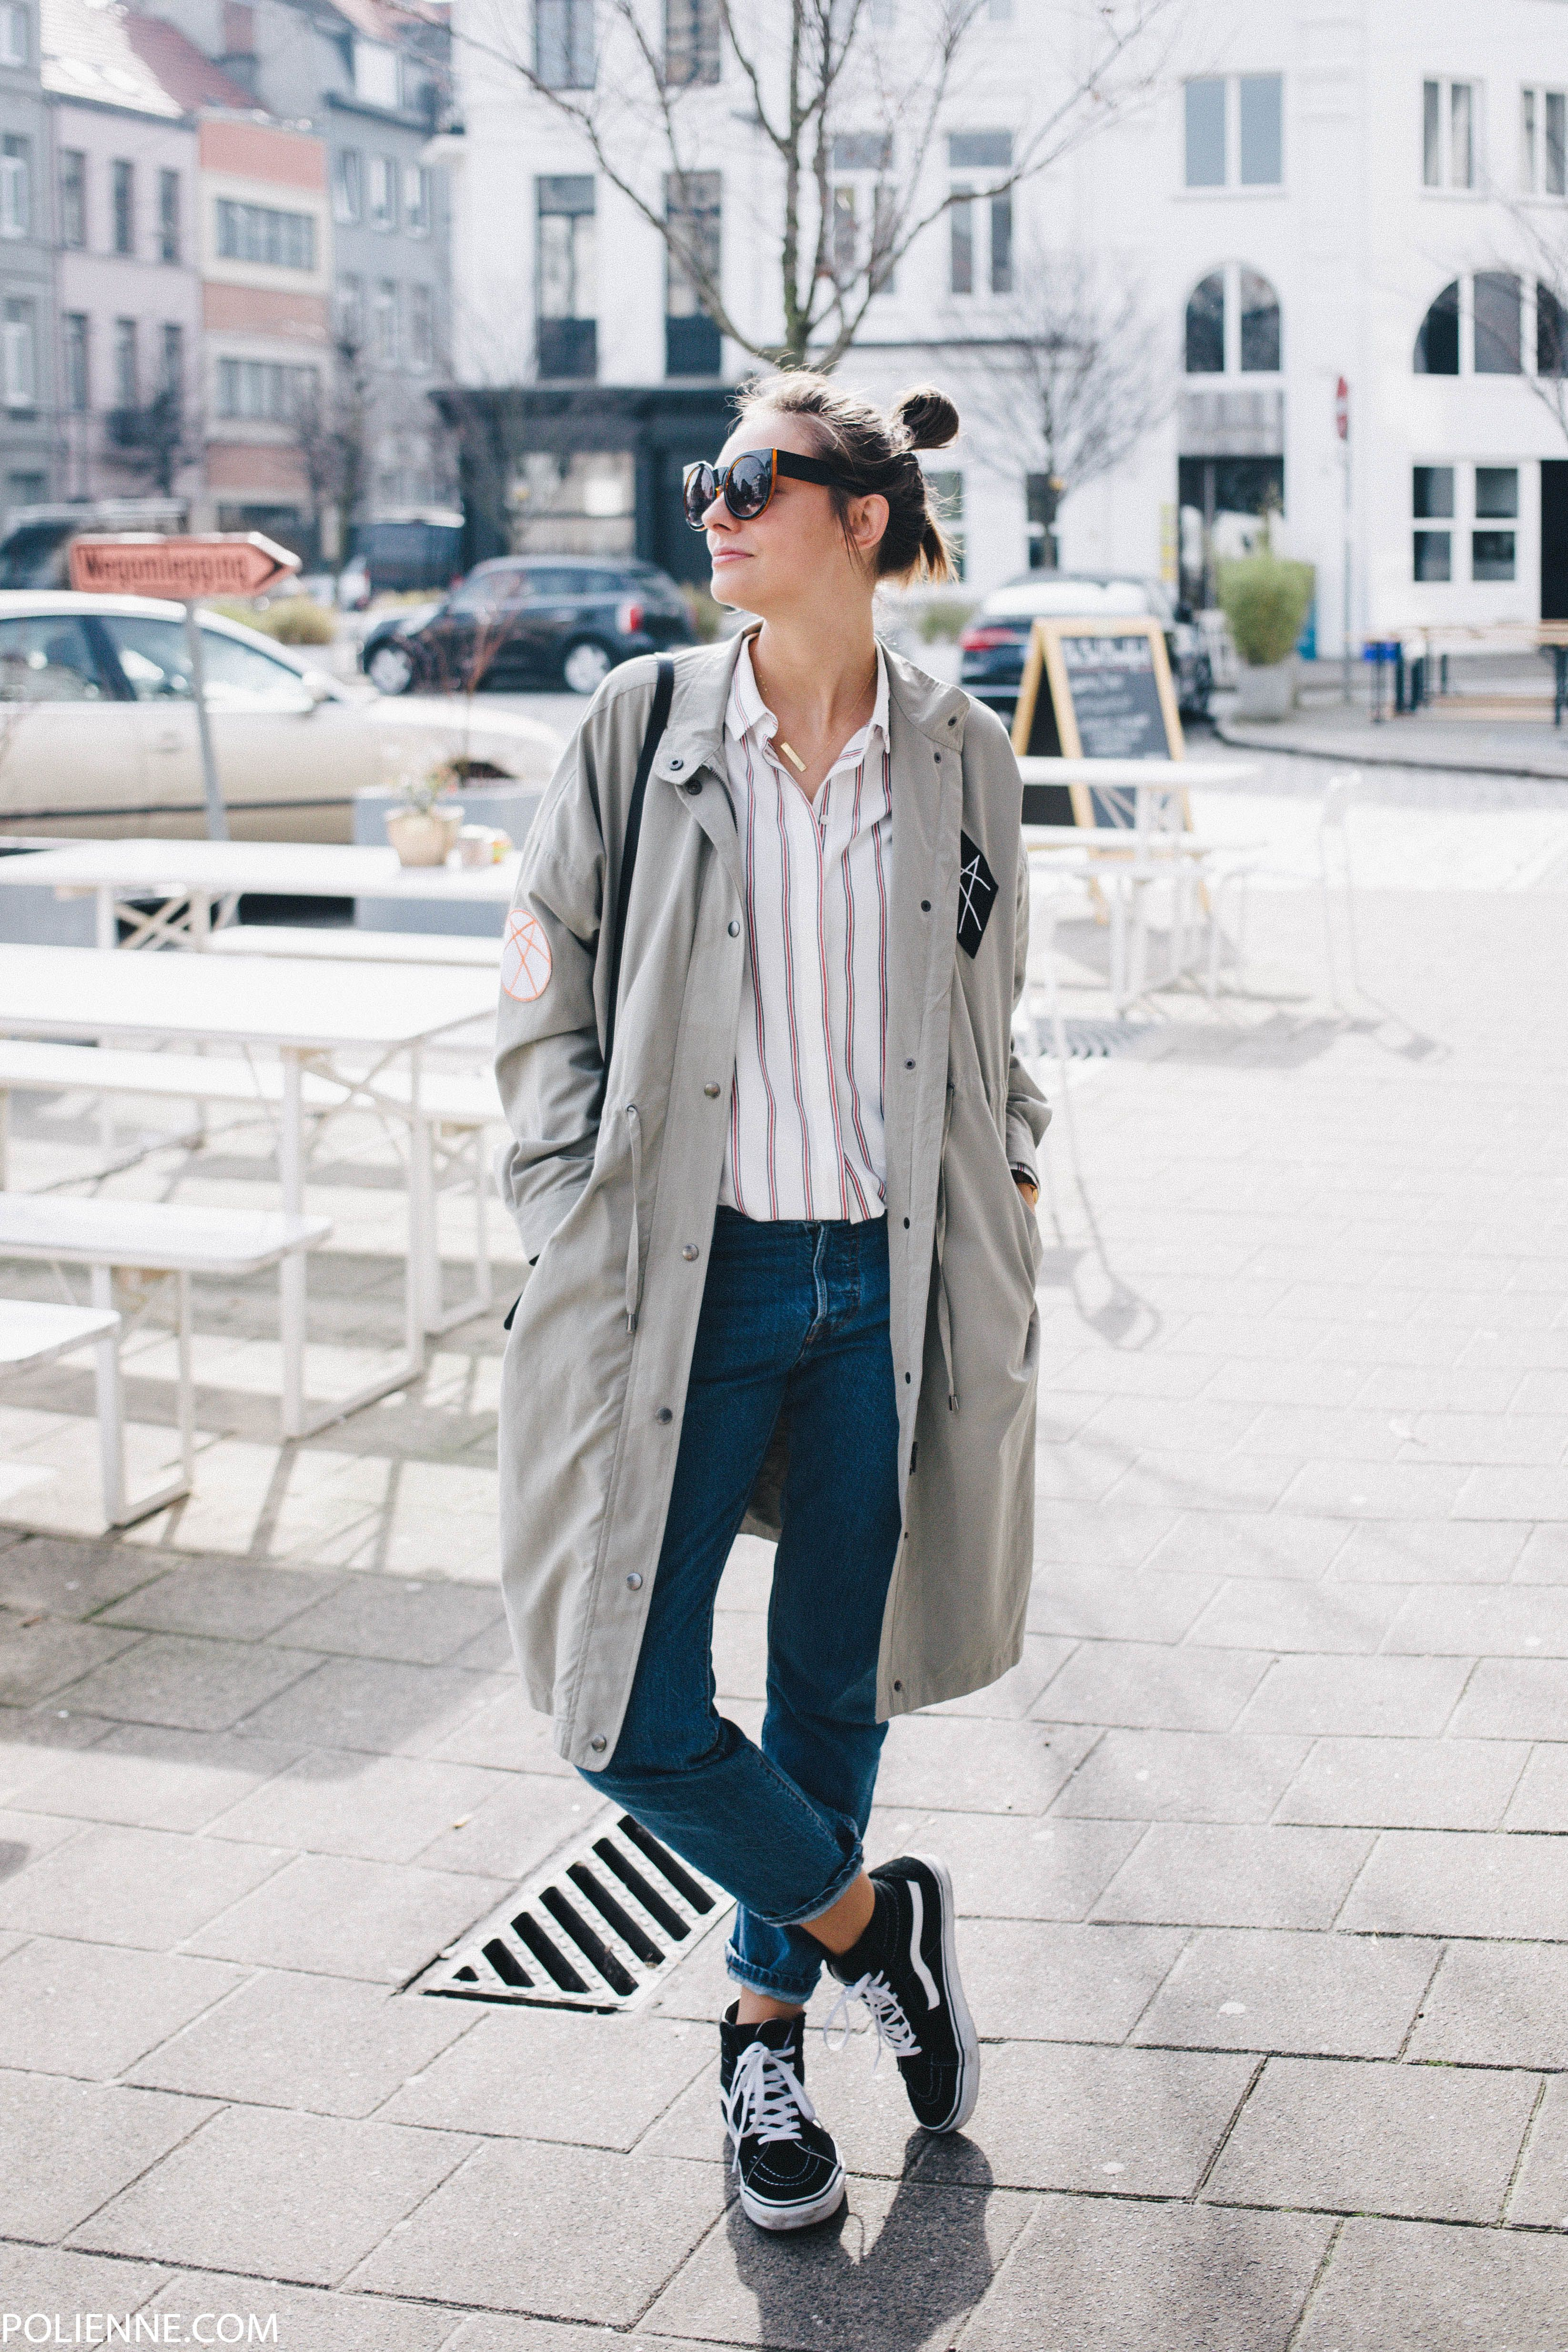 Monday morning vibes in sneakers, blue jeans, and a striped blouse.